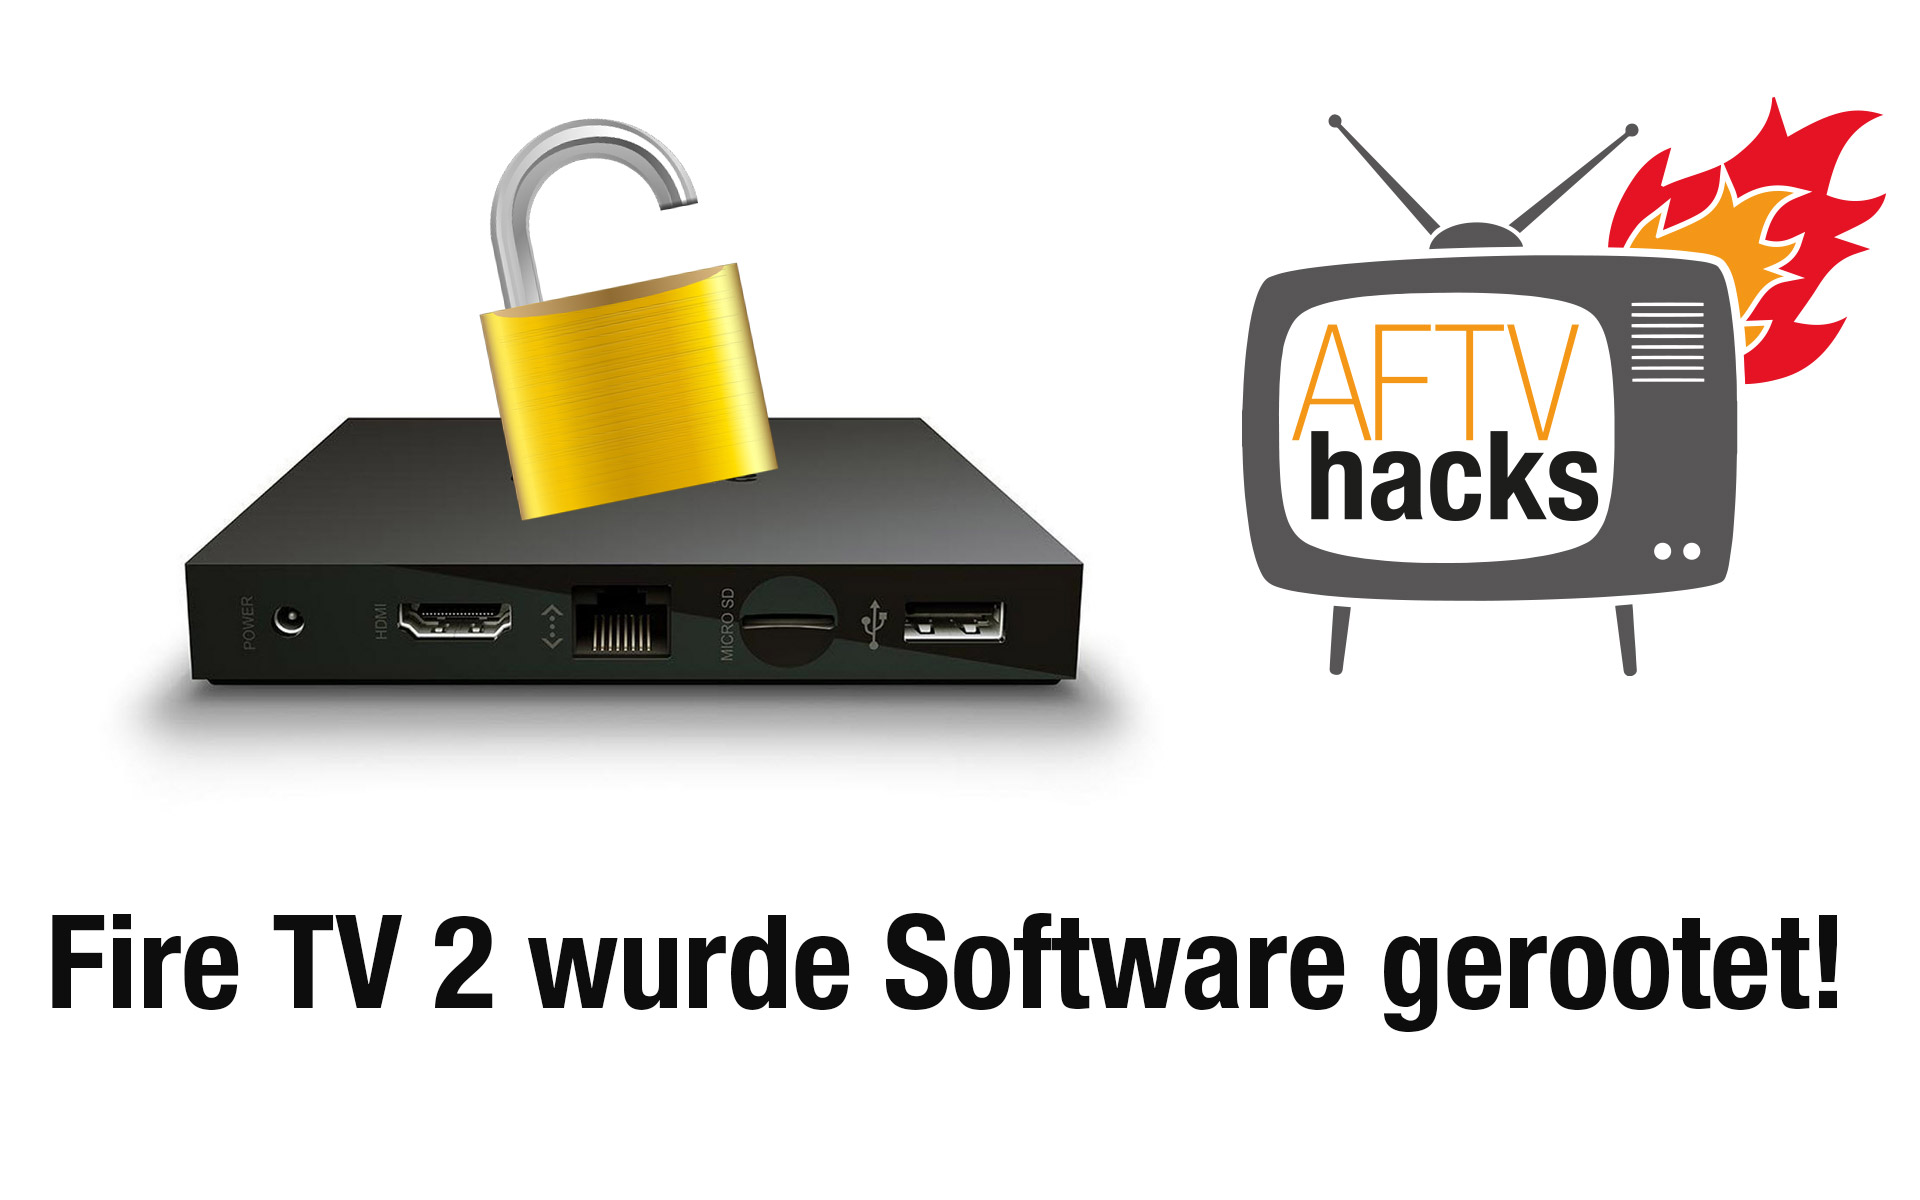 Heureka! Fire TV 2 wurde per Software gerootet!